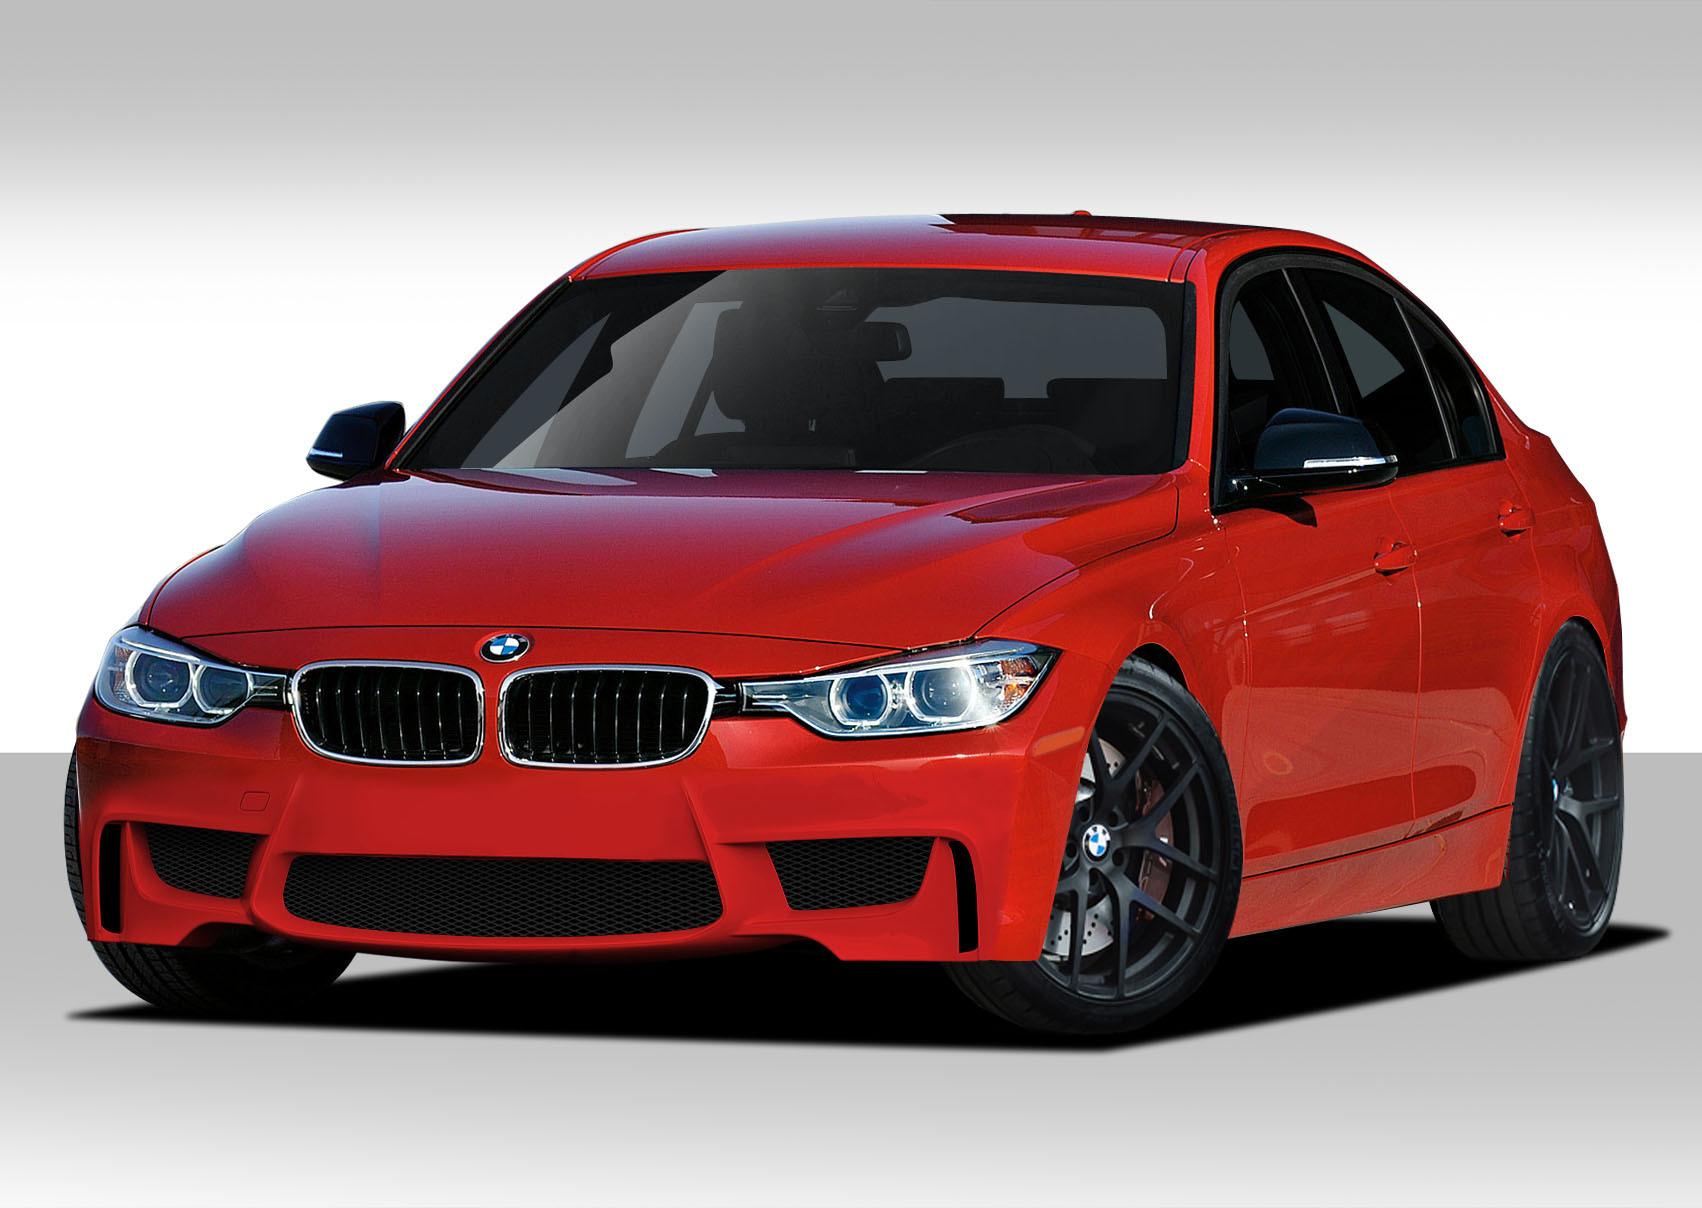 Extreme dimensions 2012 2013 bmw 3 series f30 duraflex m performance look rear diffuser 1 piece will only fit m sport bumpers